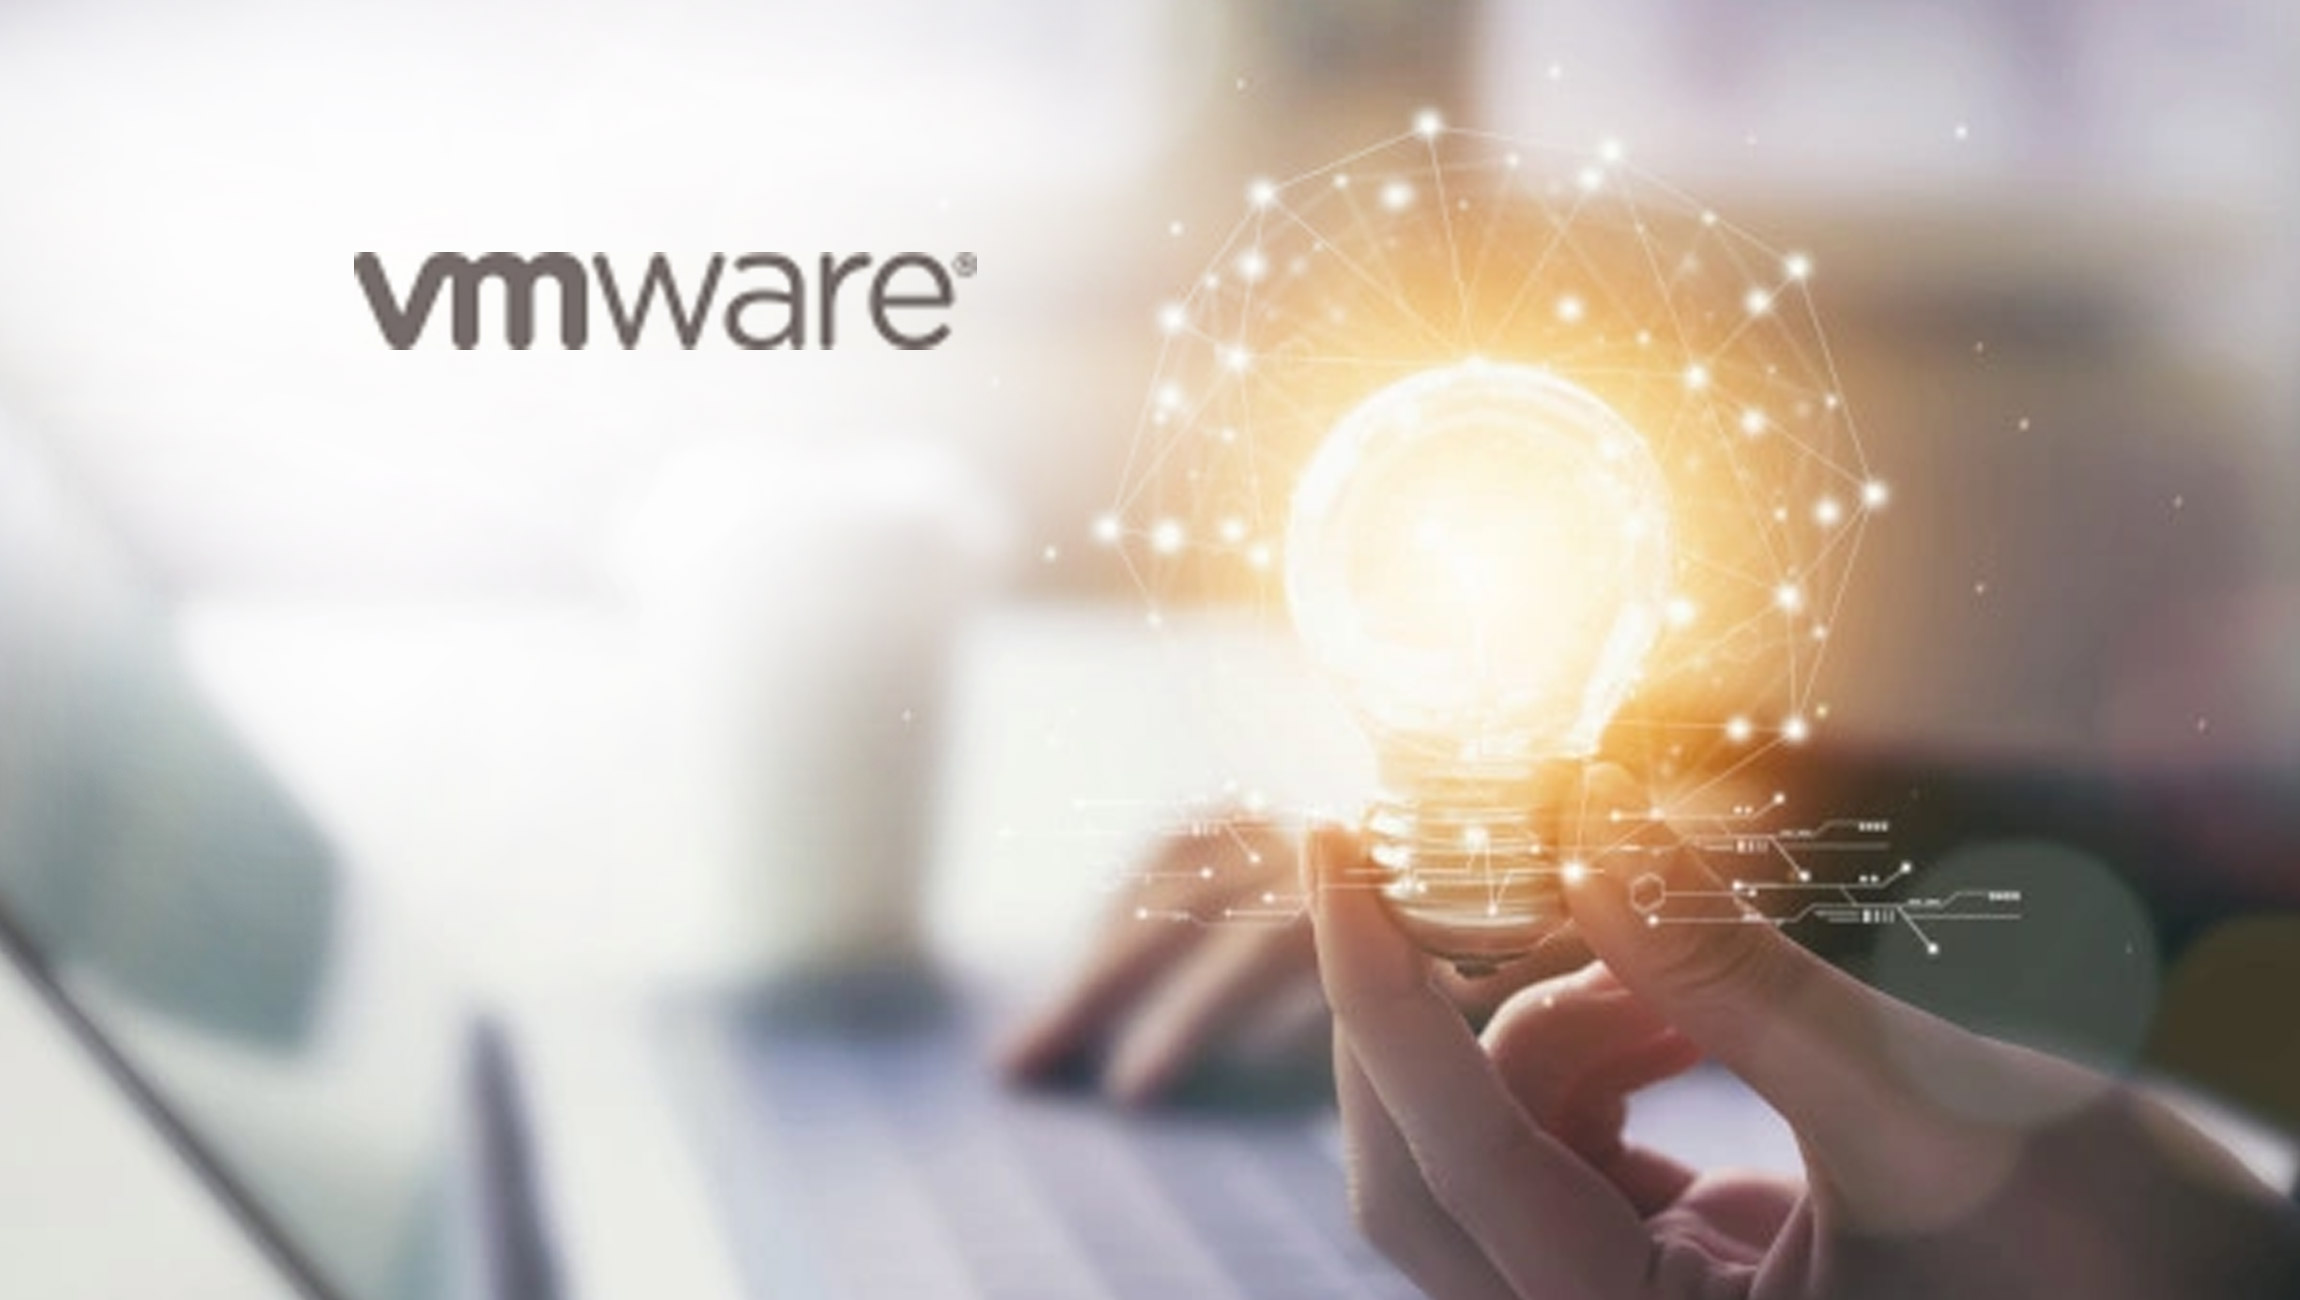 VMware Named a Leader in the 2021 Gartner Magic Quadrant for Unified Endpoint Management for Fourth Year in a Row